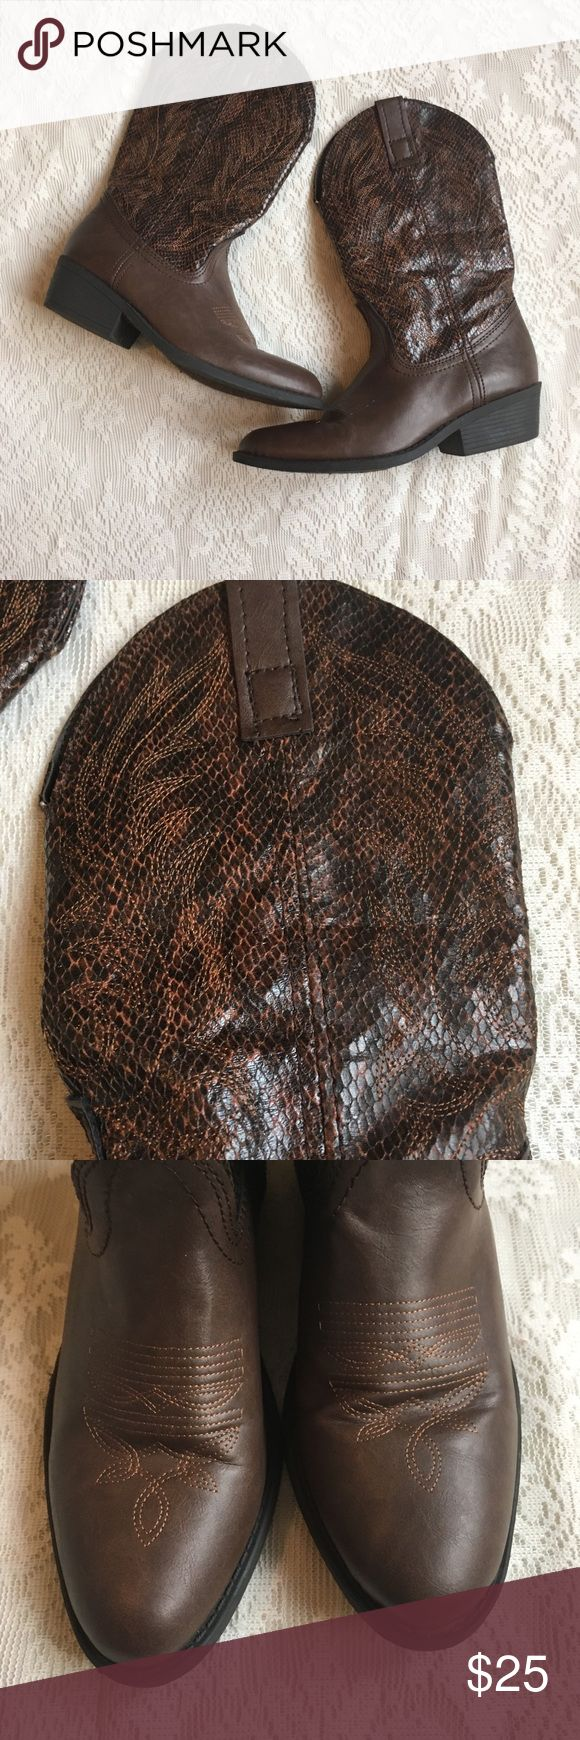 Rampage Walden faux snakeskin cowboy boots Super cute faux snake skin cowboy boots. These boots are a great pair to have in your closet because they go with so much! The bottom has a little bit of wear, but otherwise in excellent used condition! Rampage Shoes